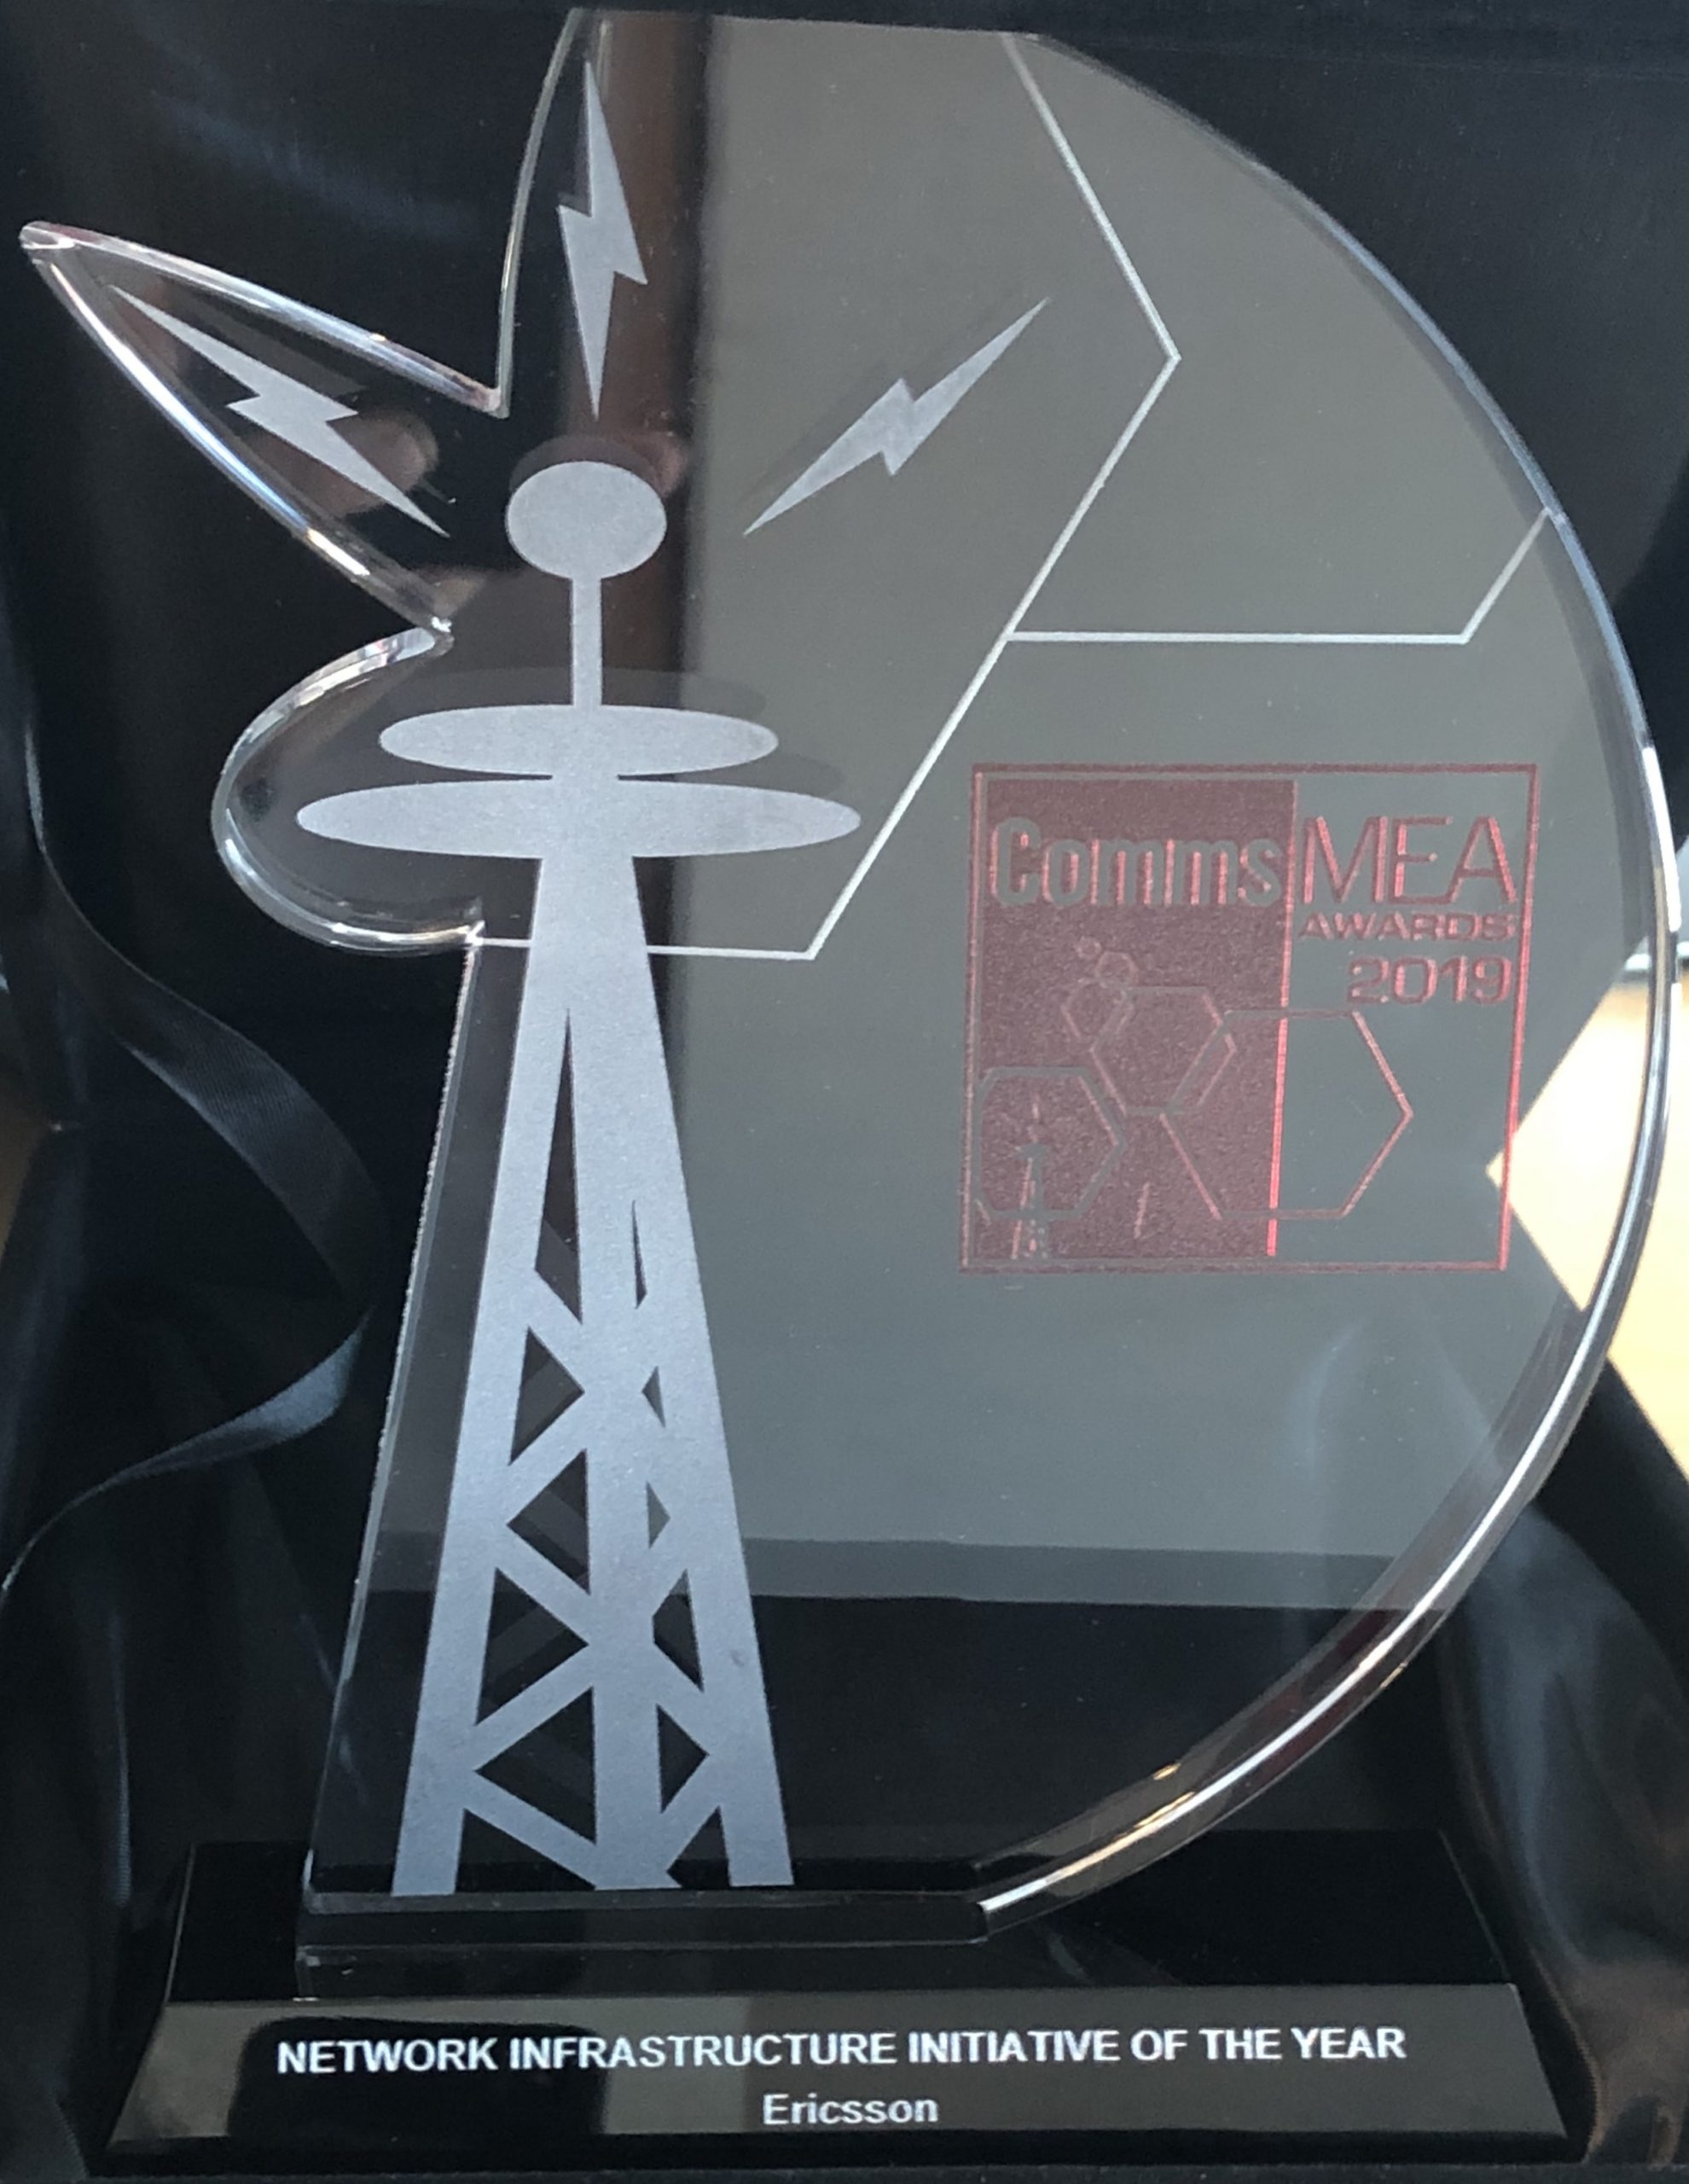 Ericsson Radio wins the Network Infrastructure Initiative of the Year